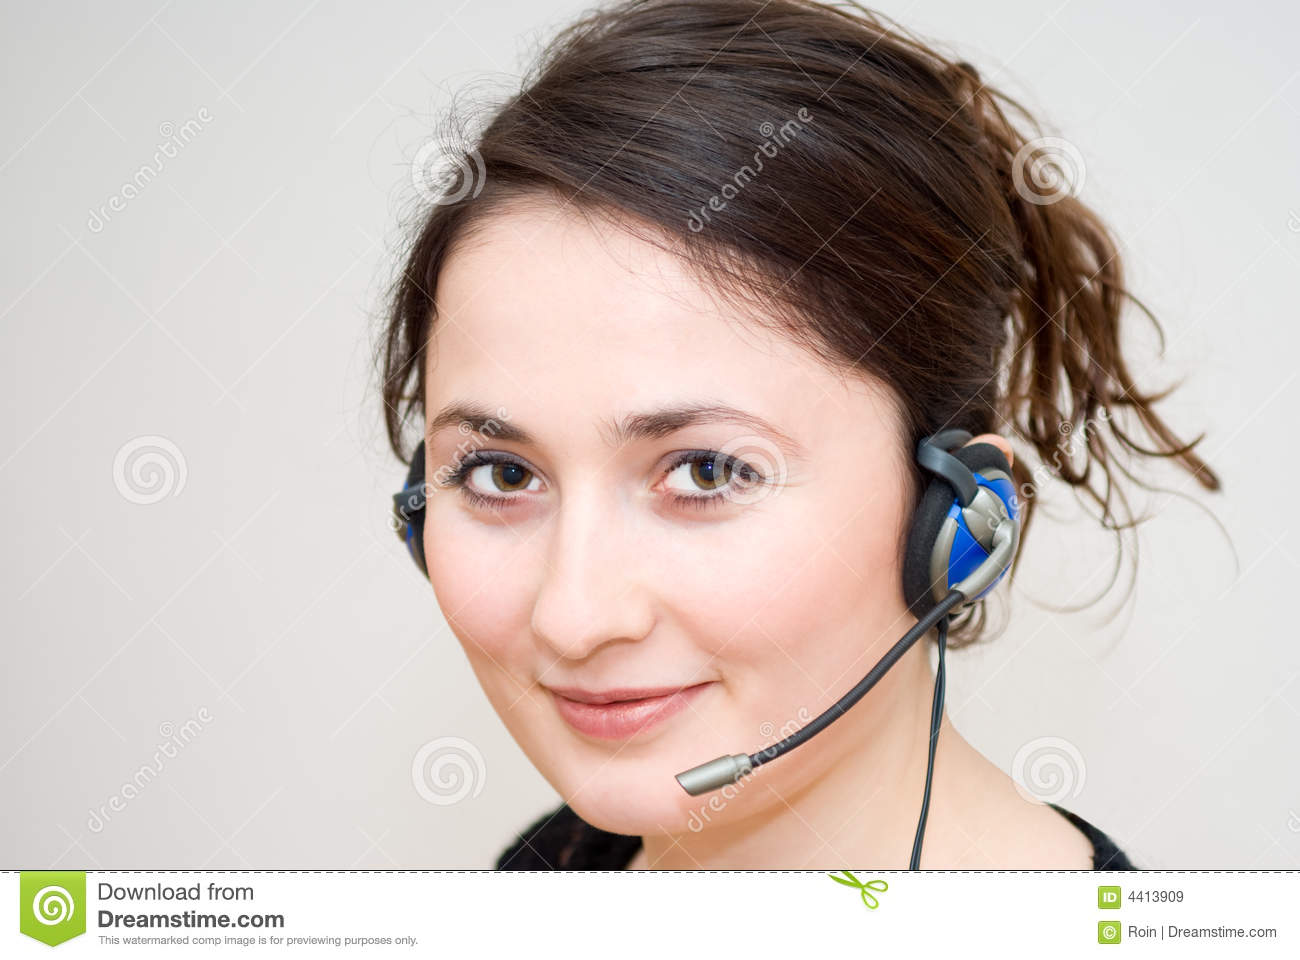 how to become a telephone operator